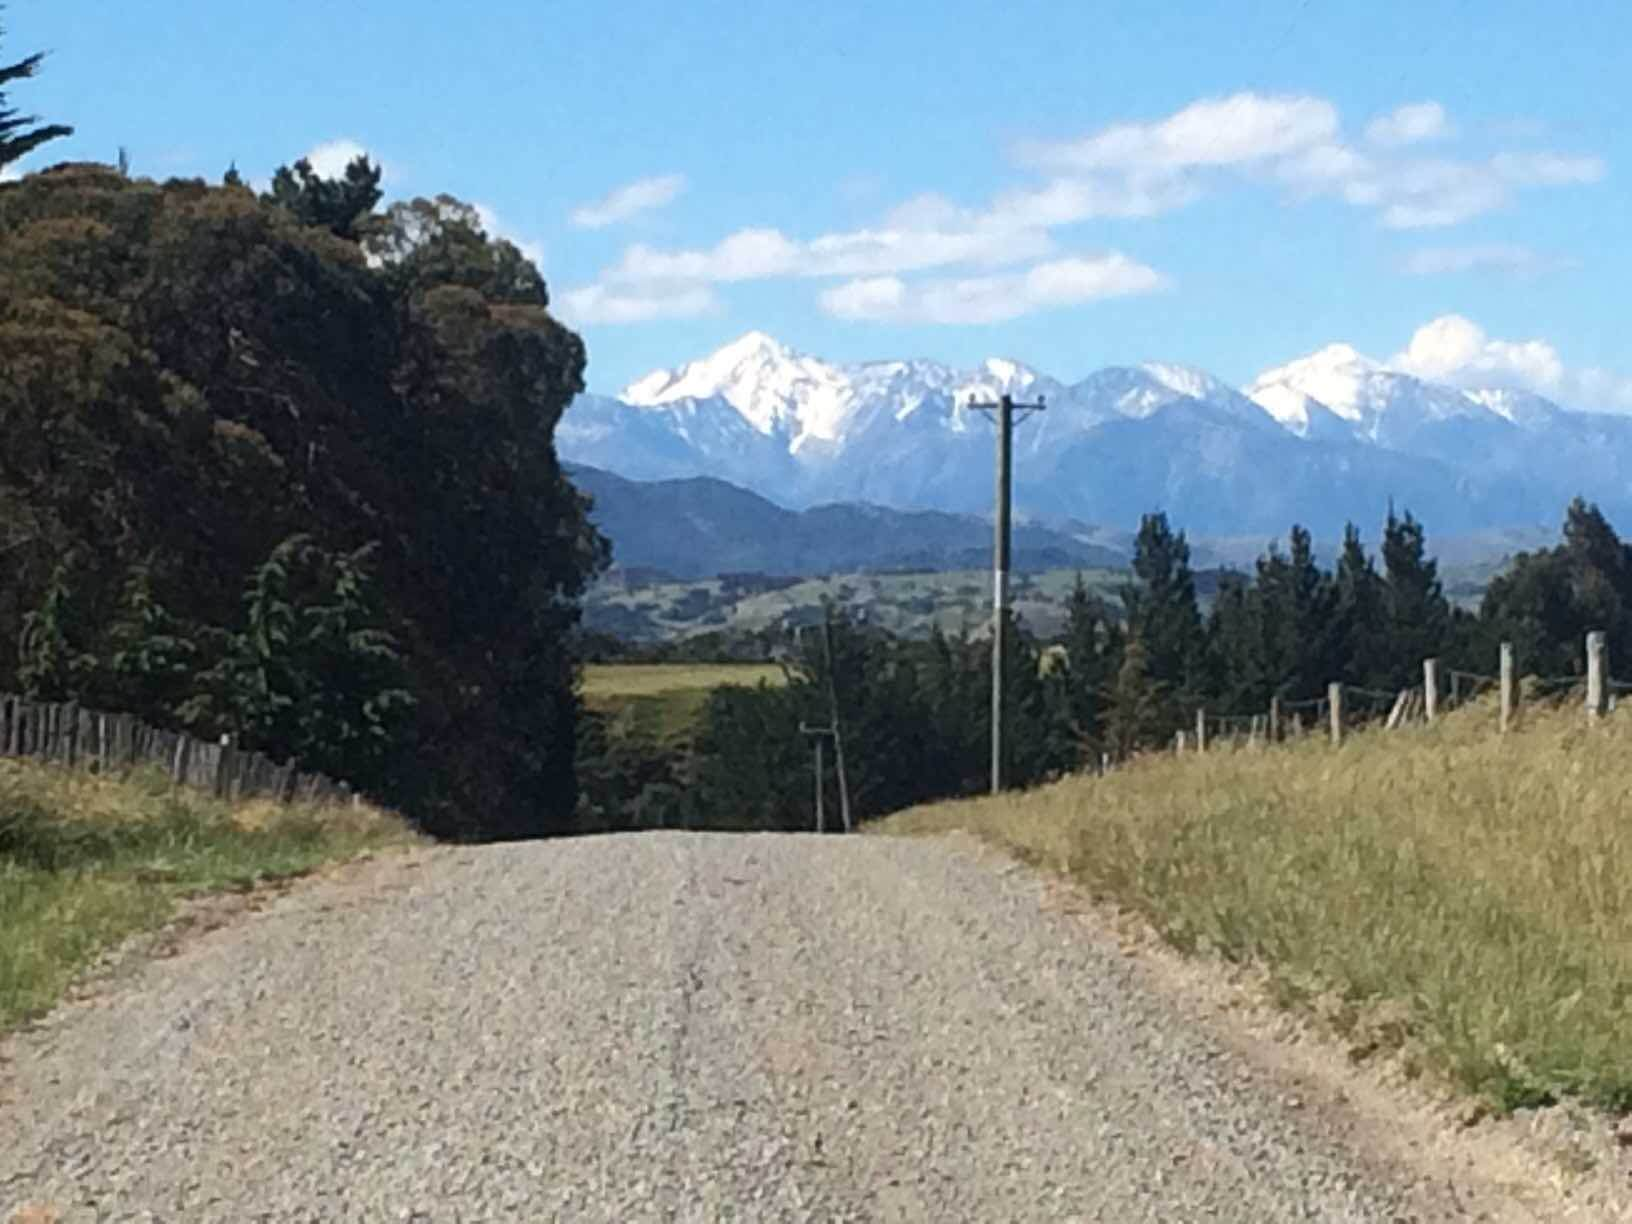 Lansdowne-Kaikouras-from-the-Road-Aug15-copy.jpg